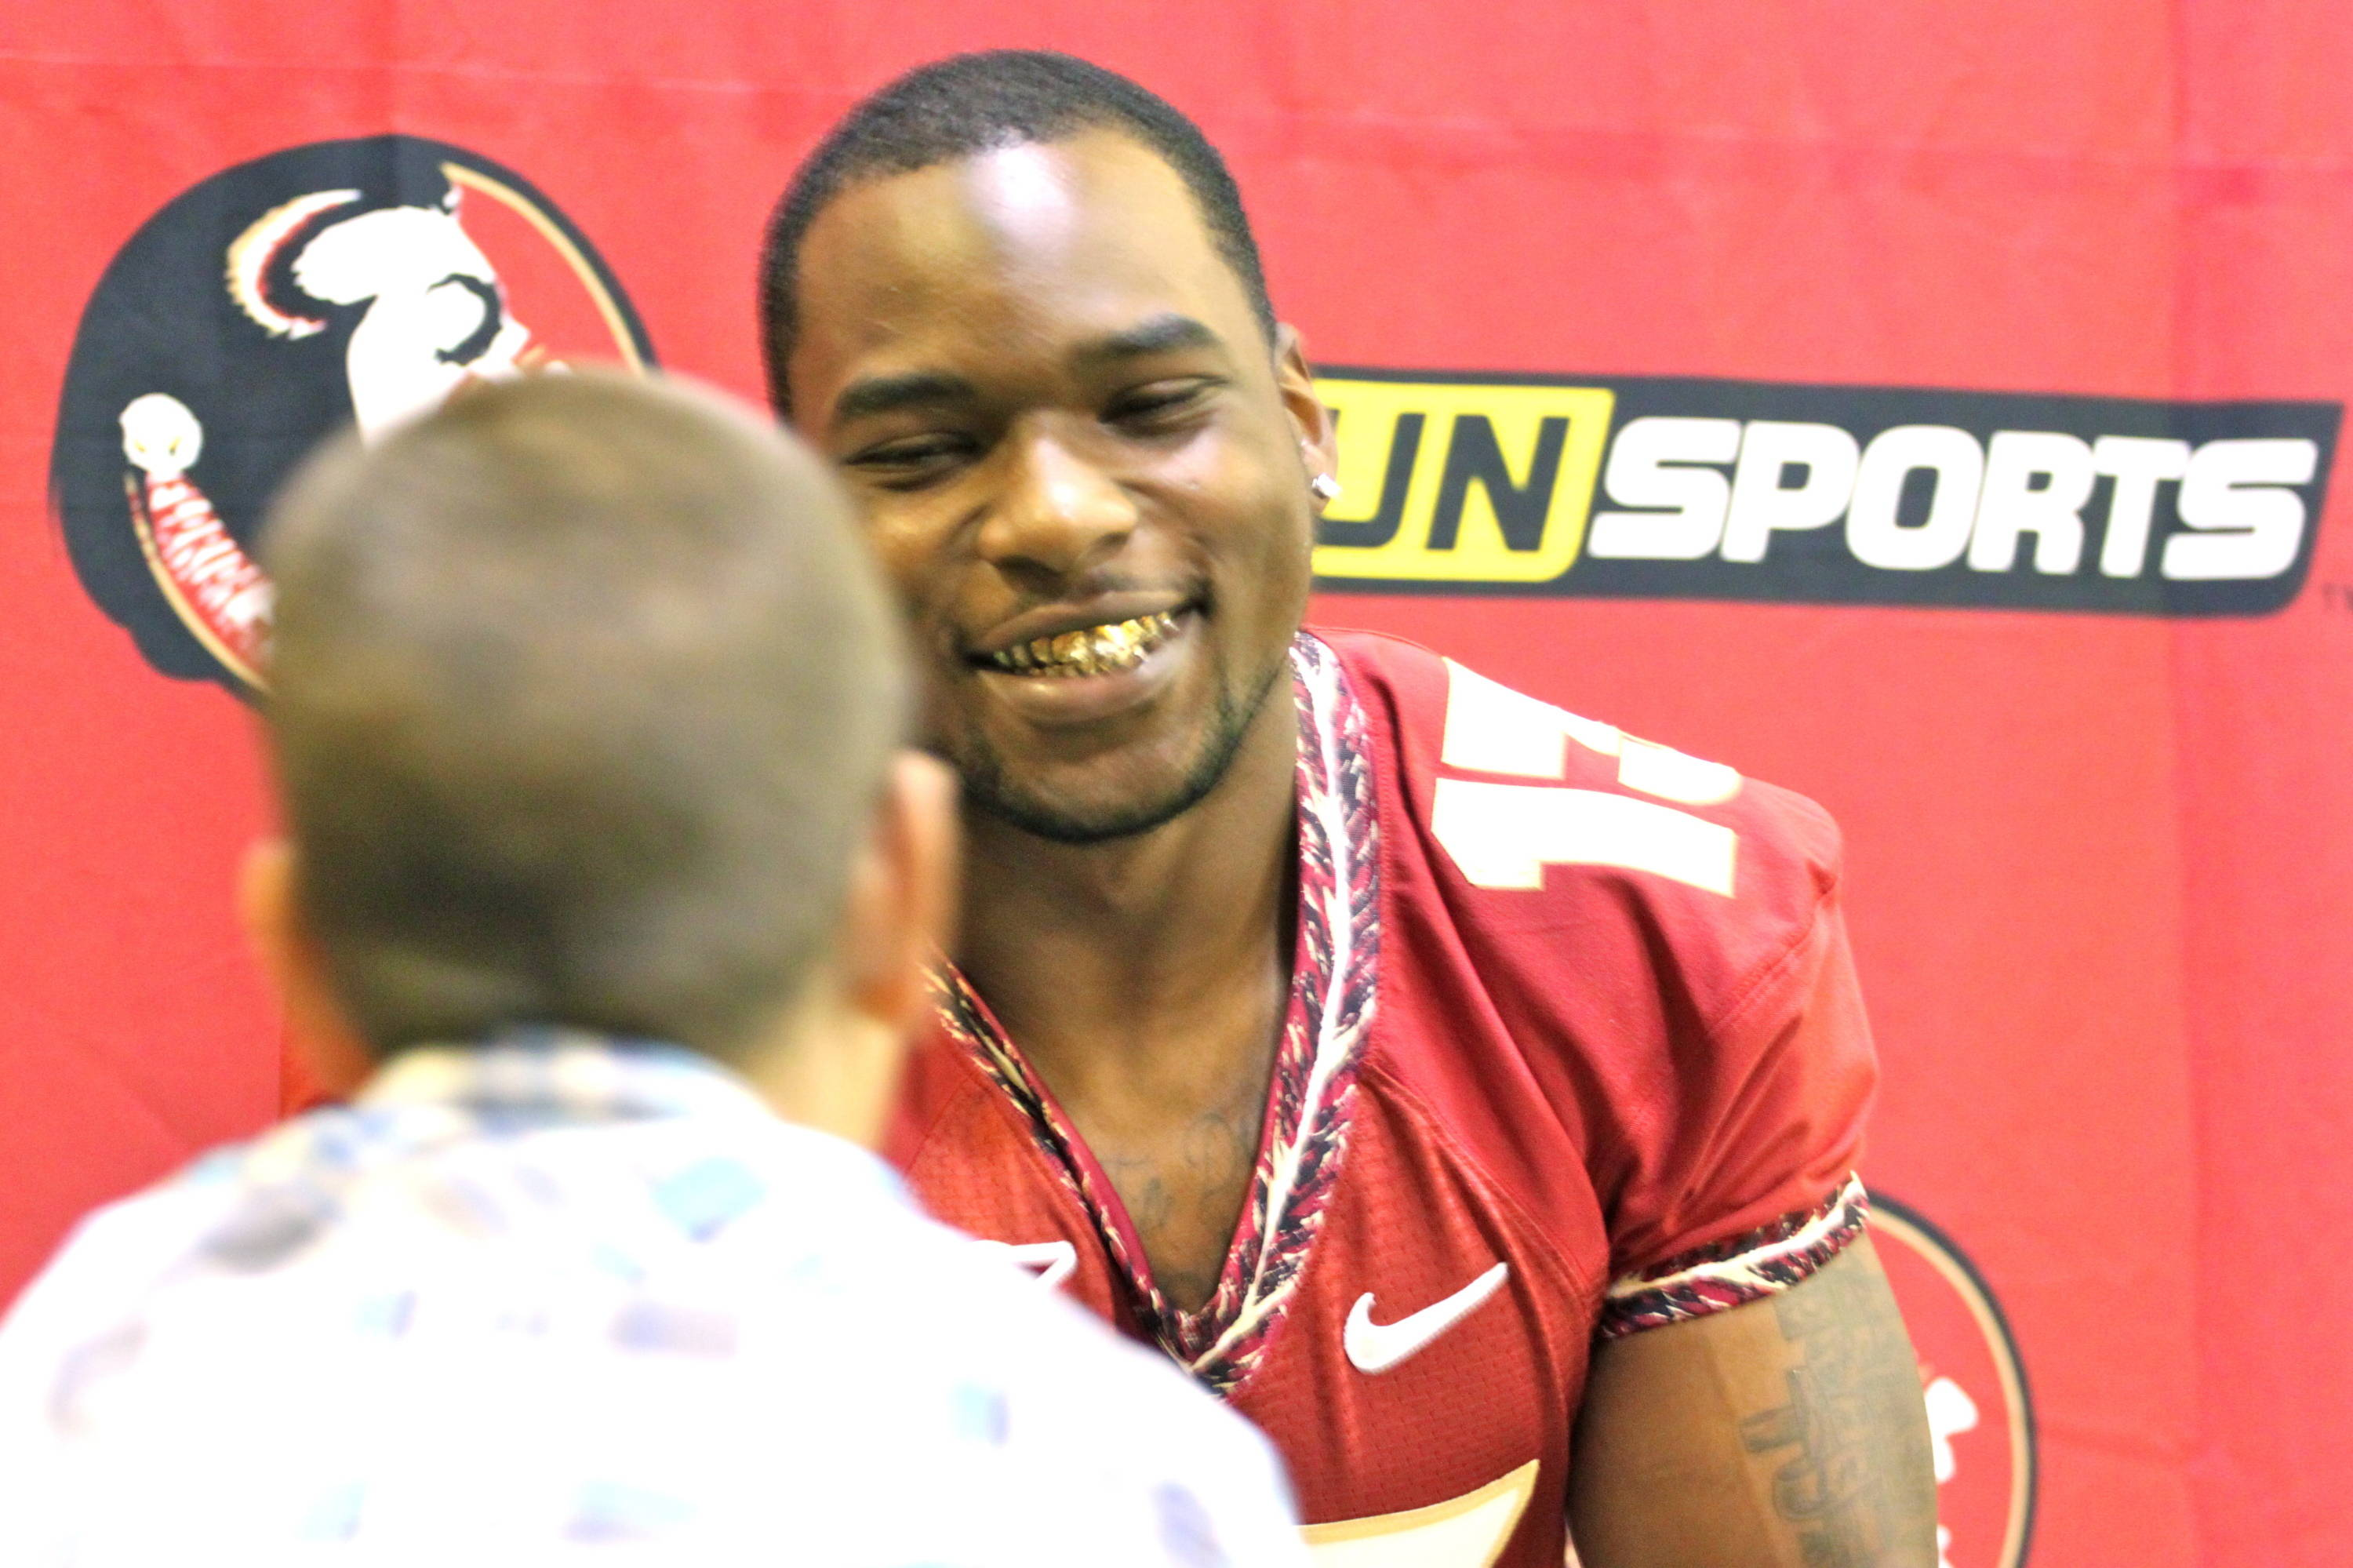 Nigel Bradham and Jr. Nole reporter Blaine Thomas at football media day.